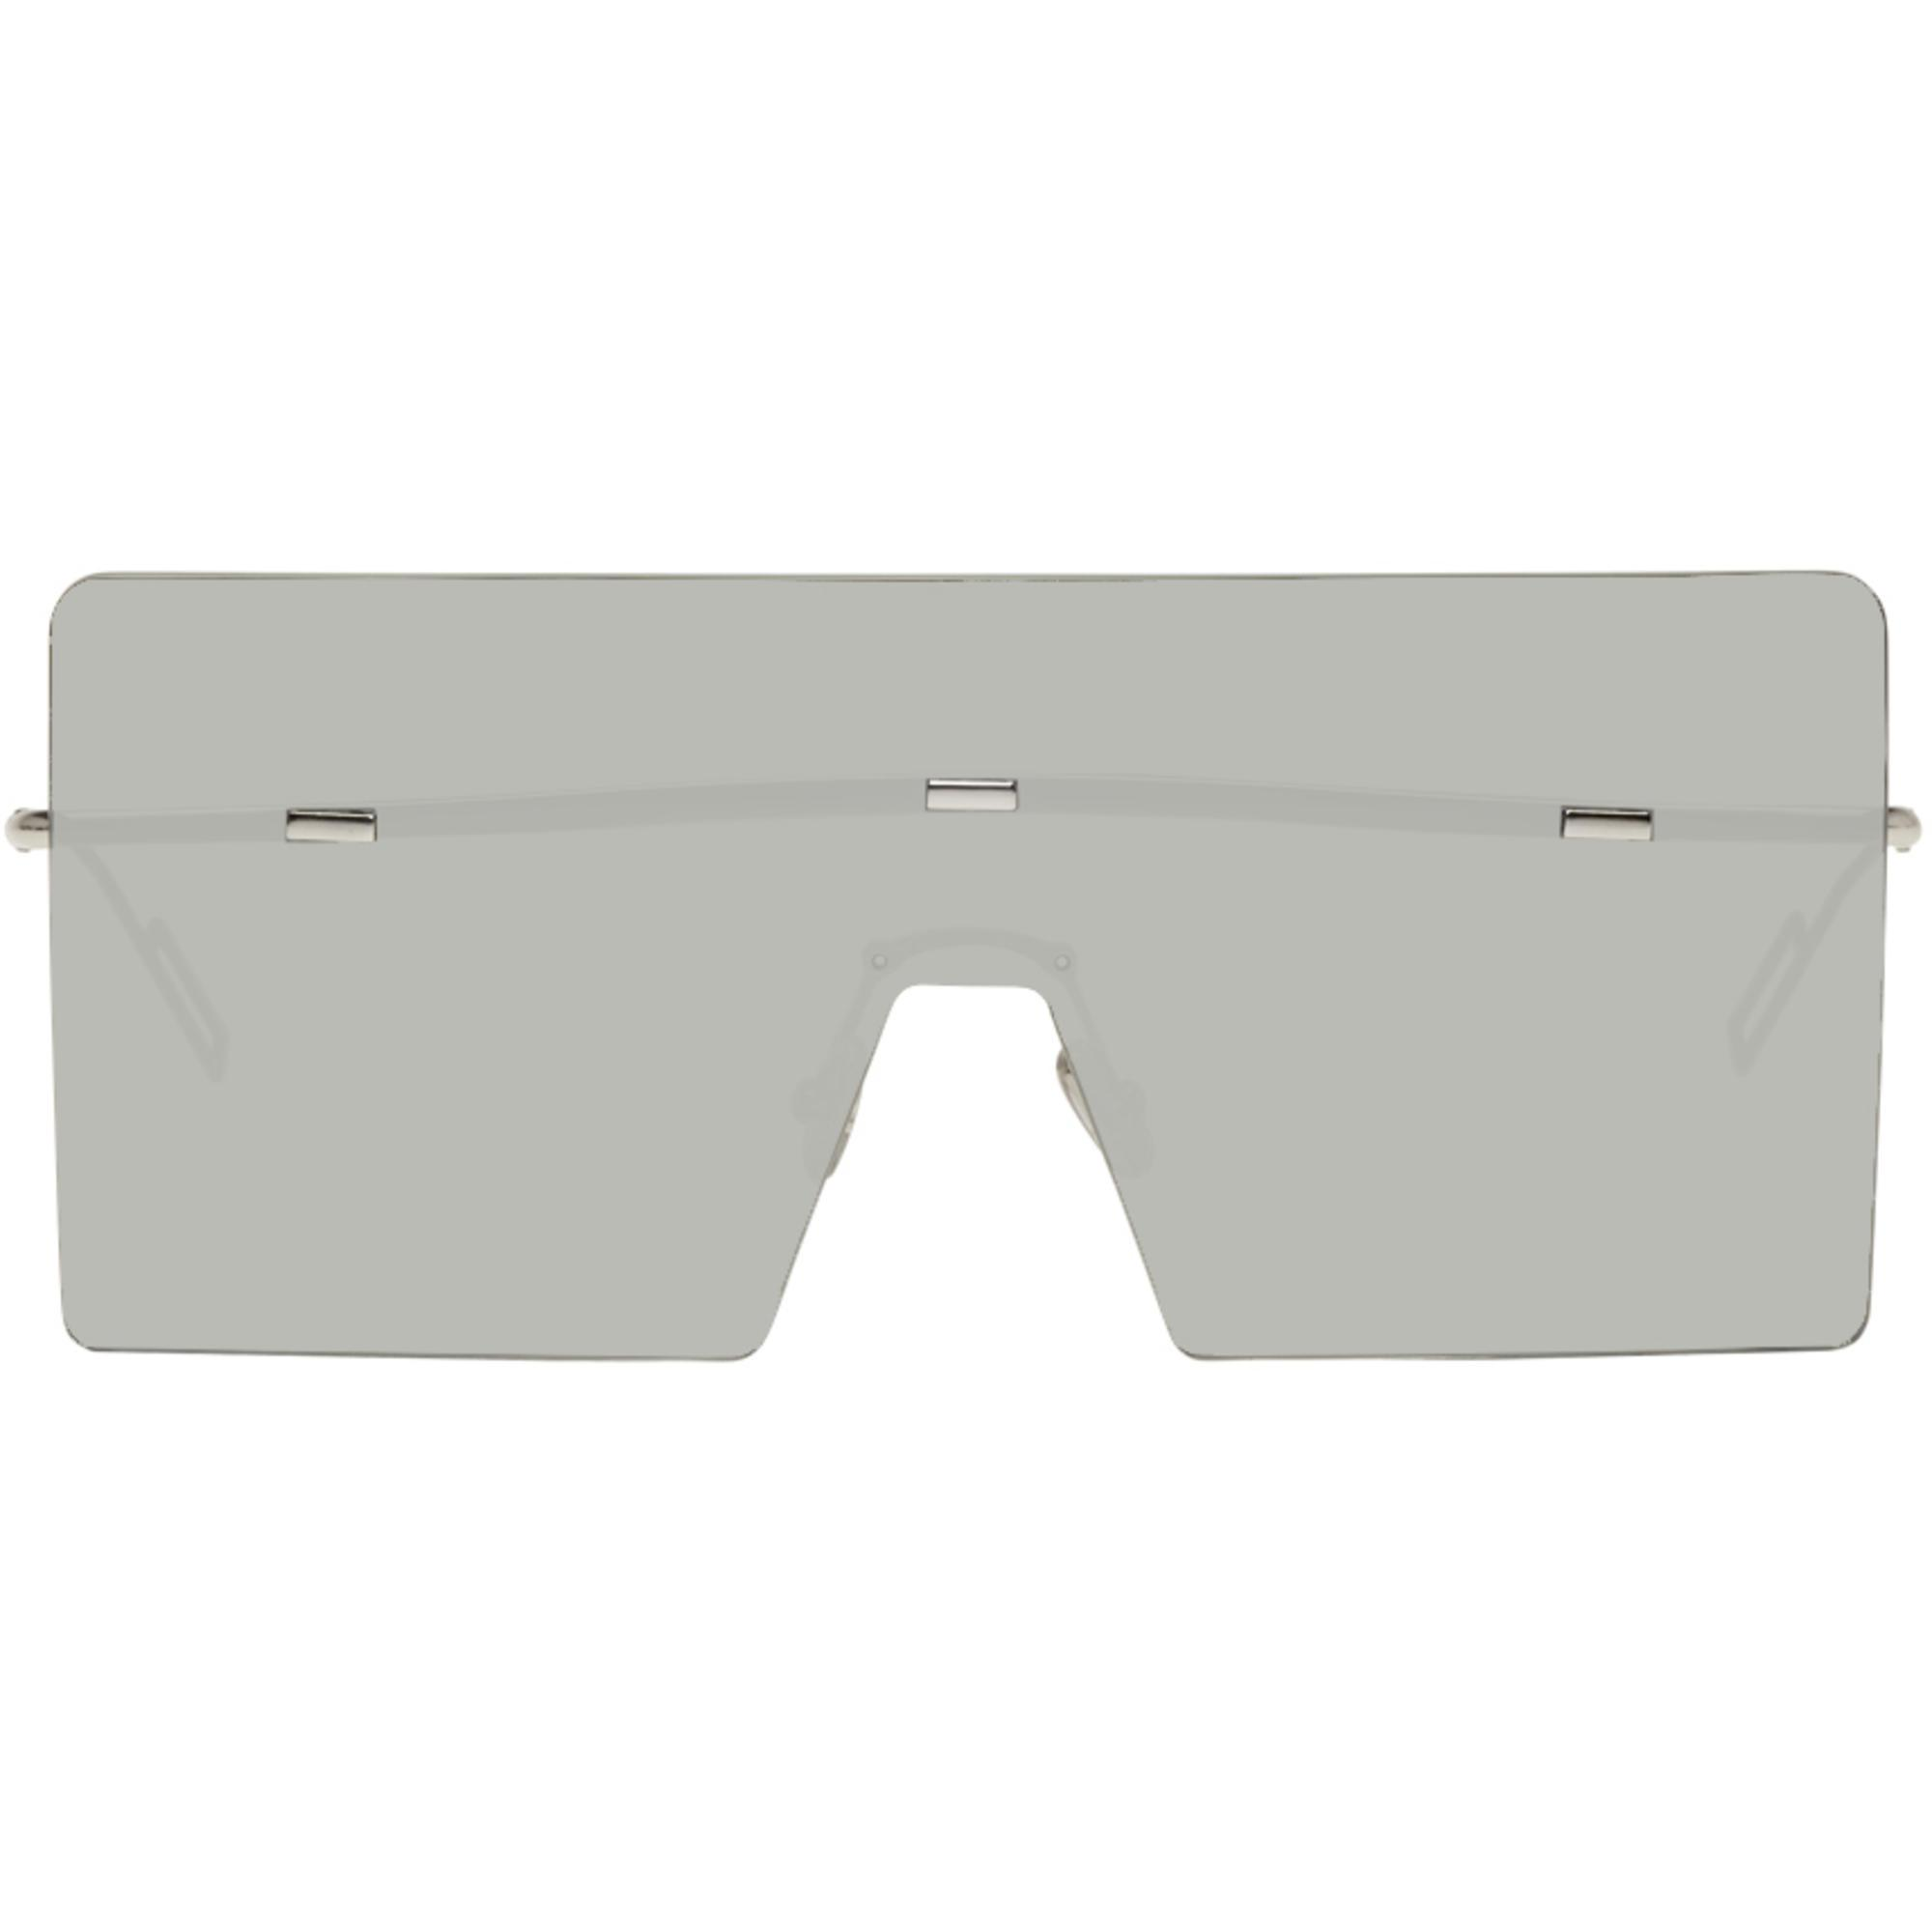 9fe93b245d25 Dior Homme Silver Hardior Shield Sunglasses in Metallic for Men - Lyst